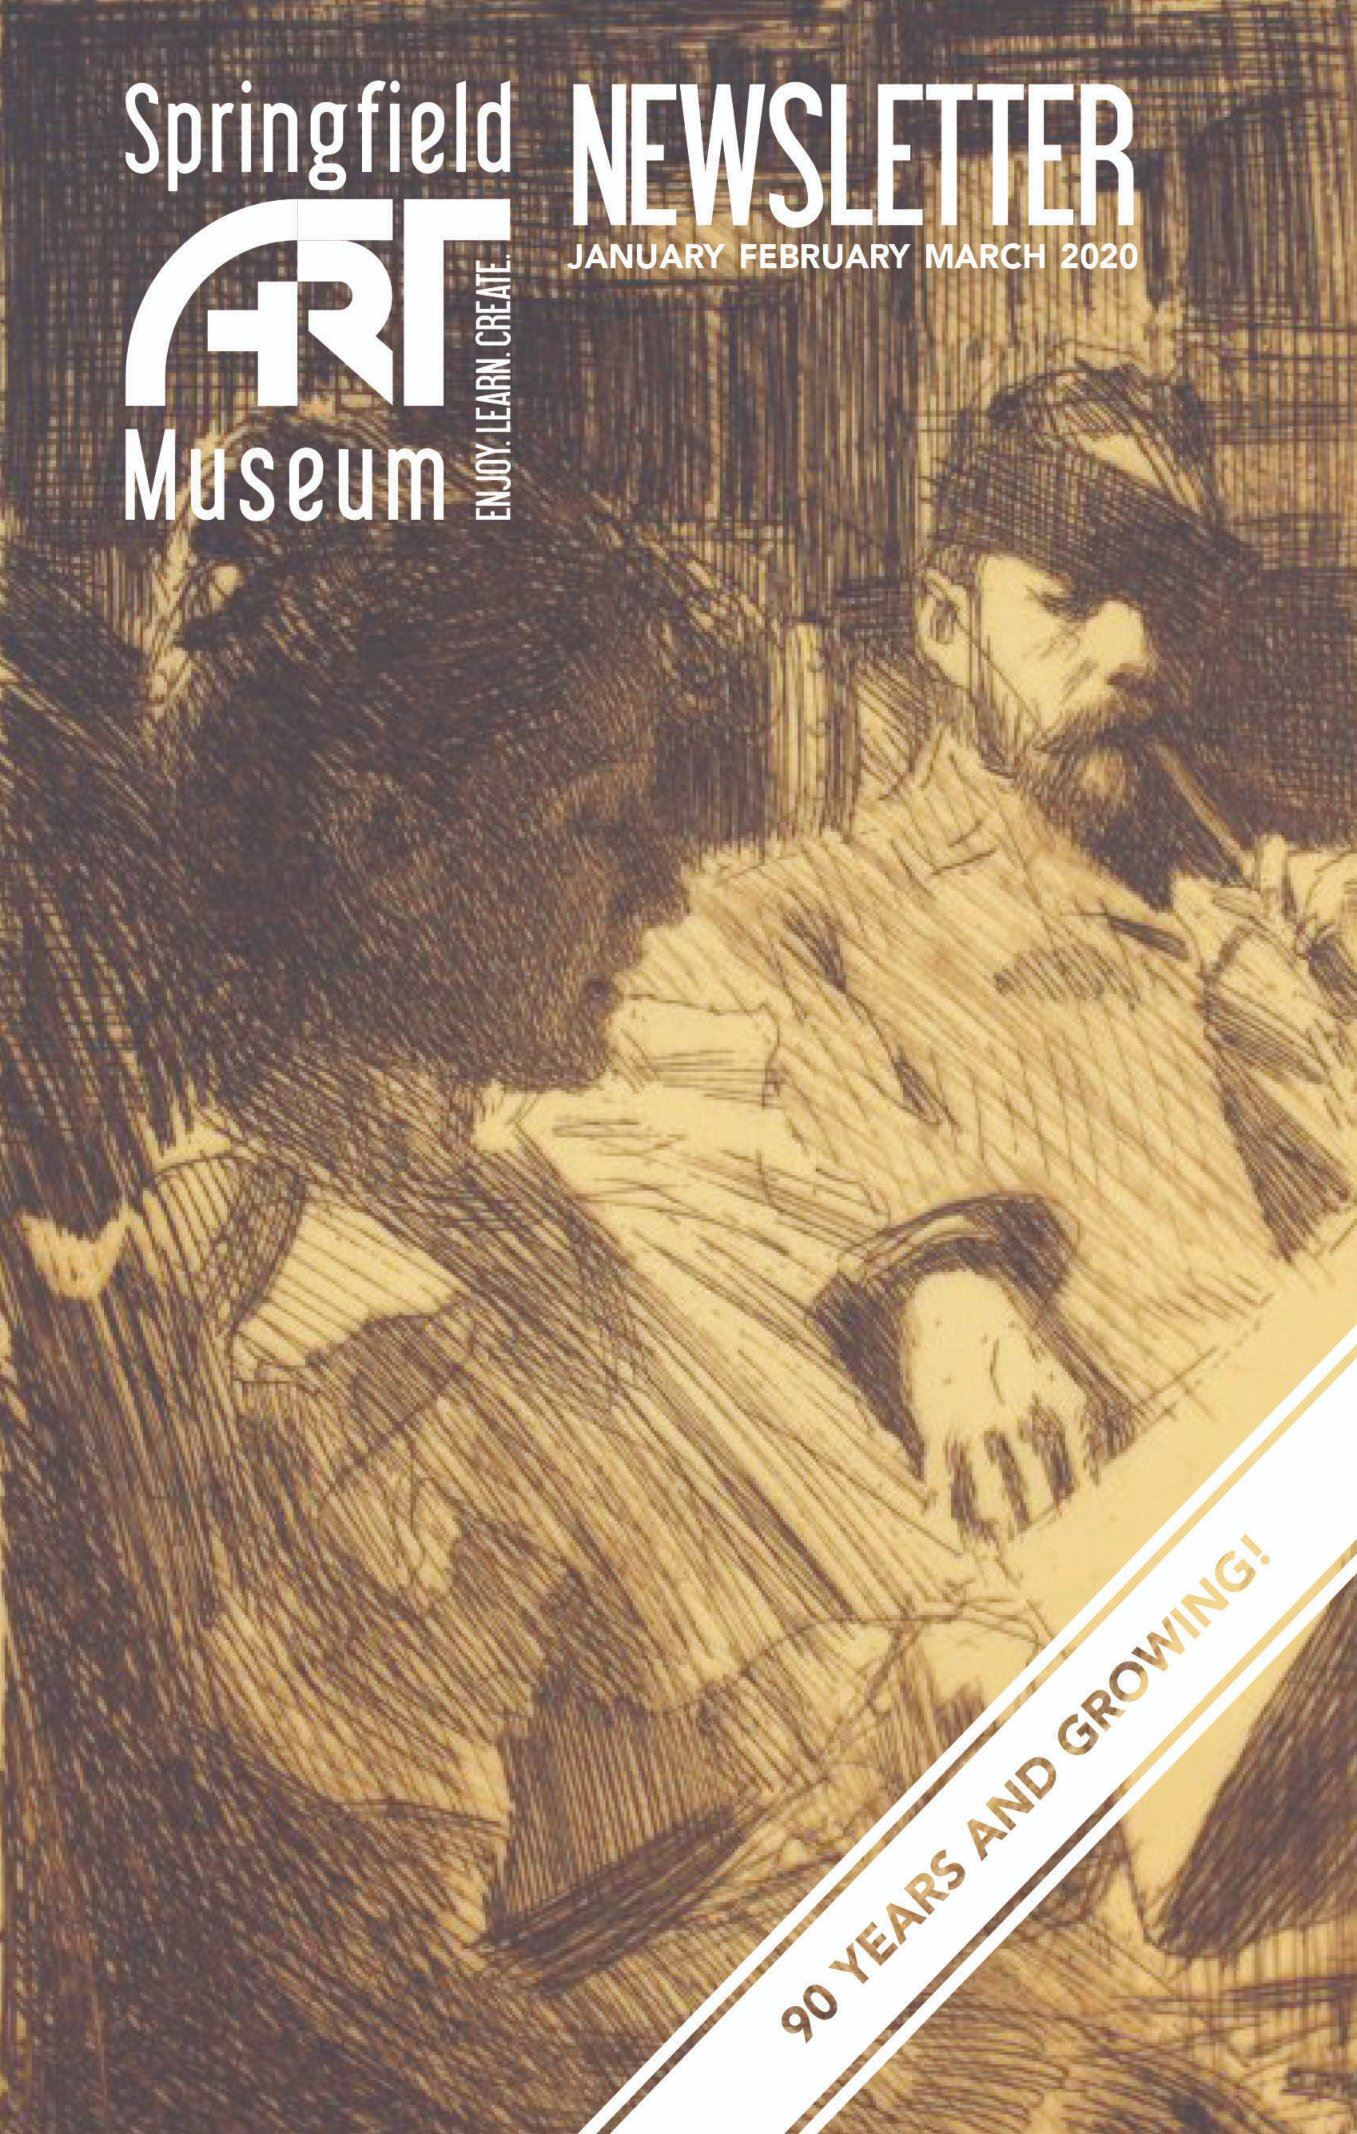 JFM 2020 Newsletter Cover featuring Anders Zorn etching of a couple reading together